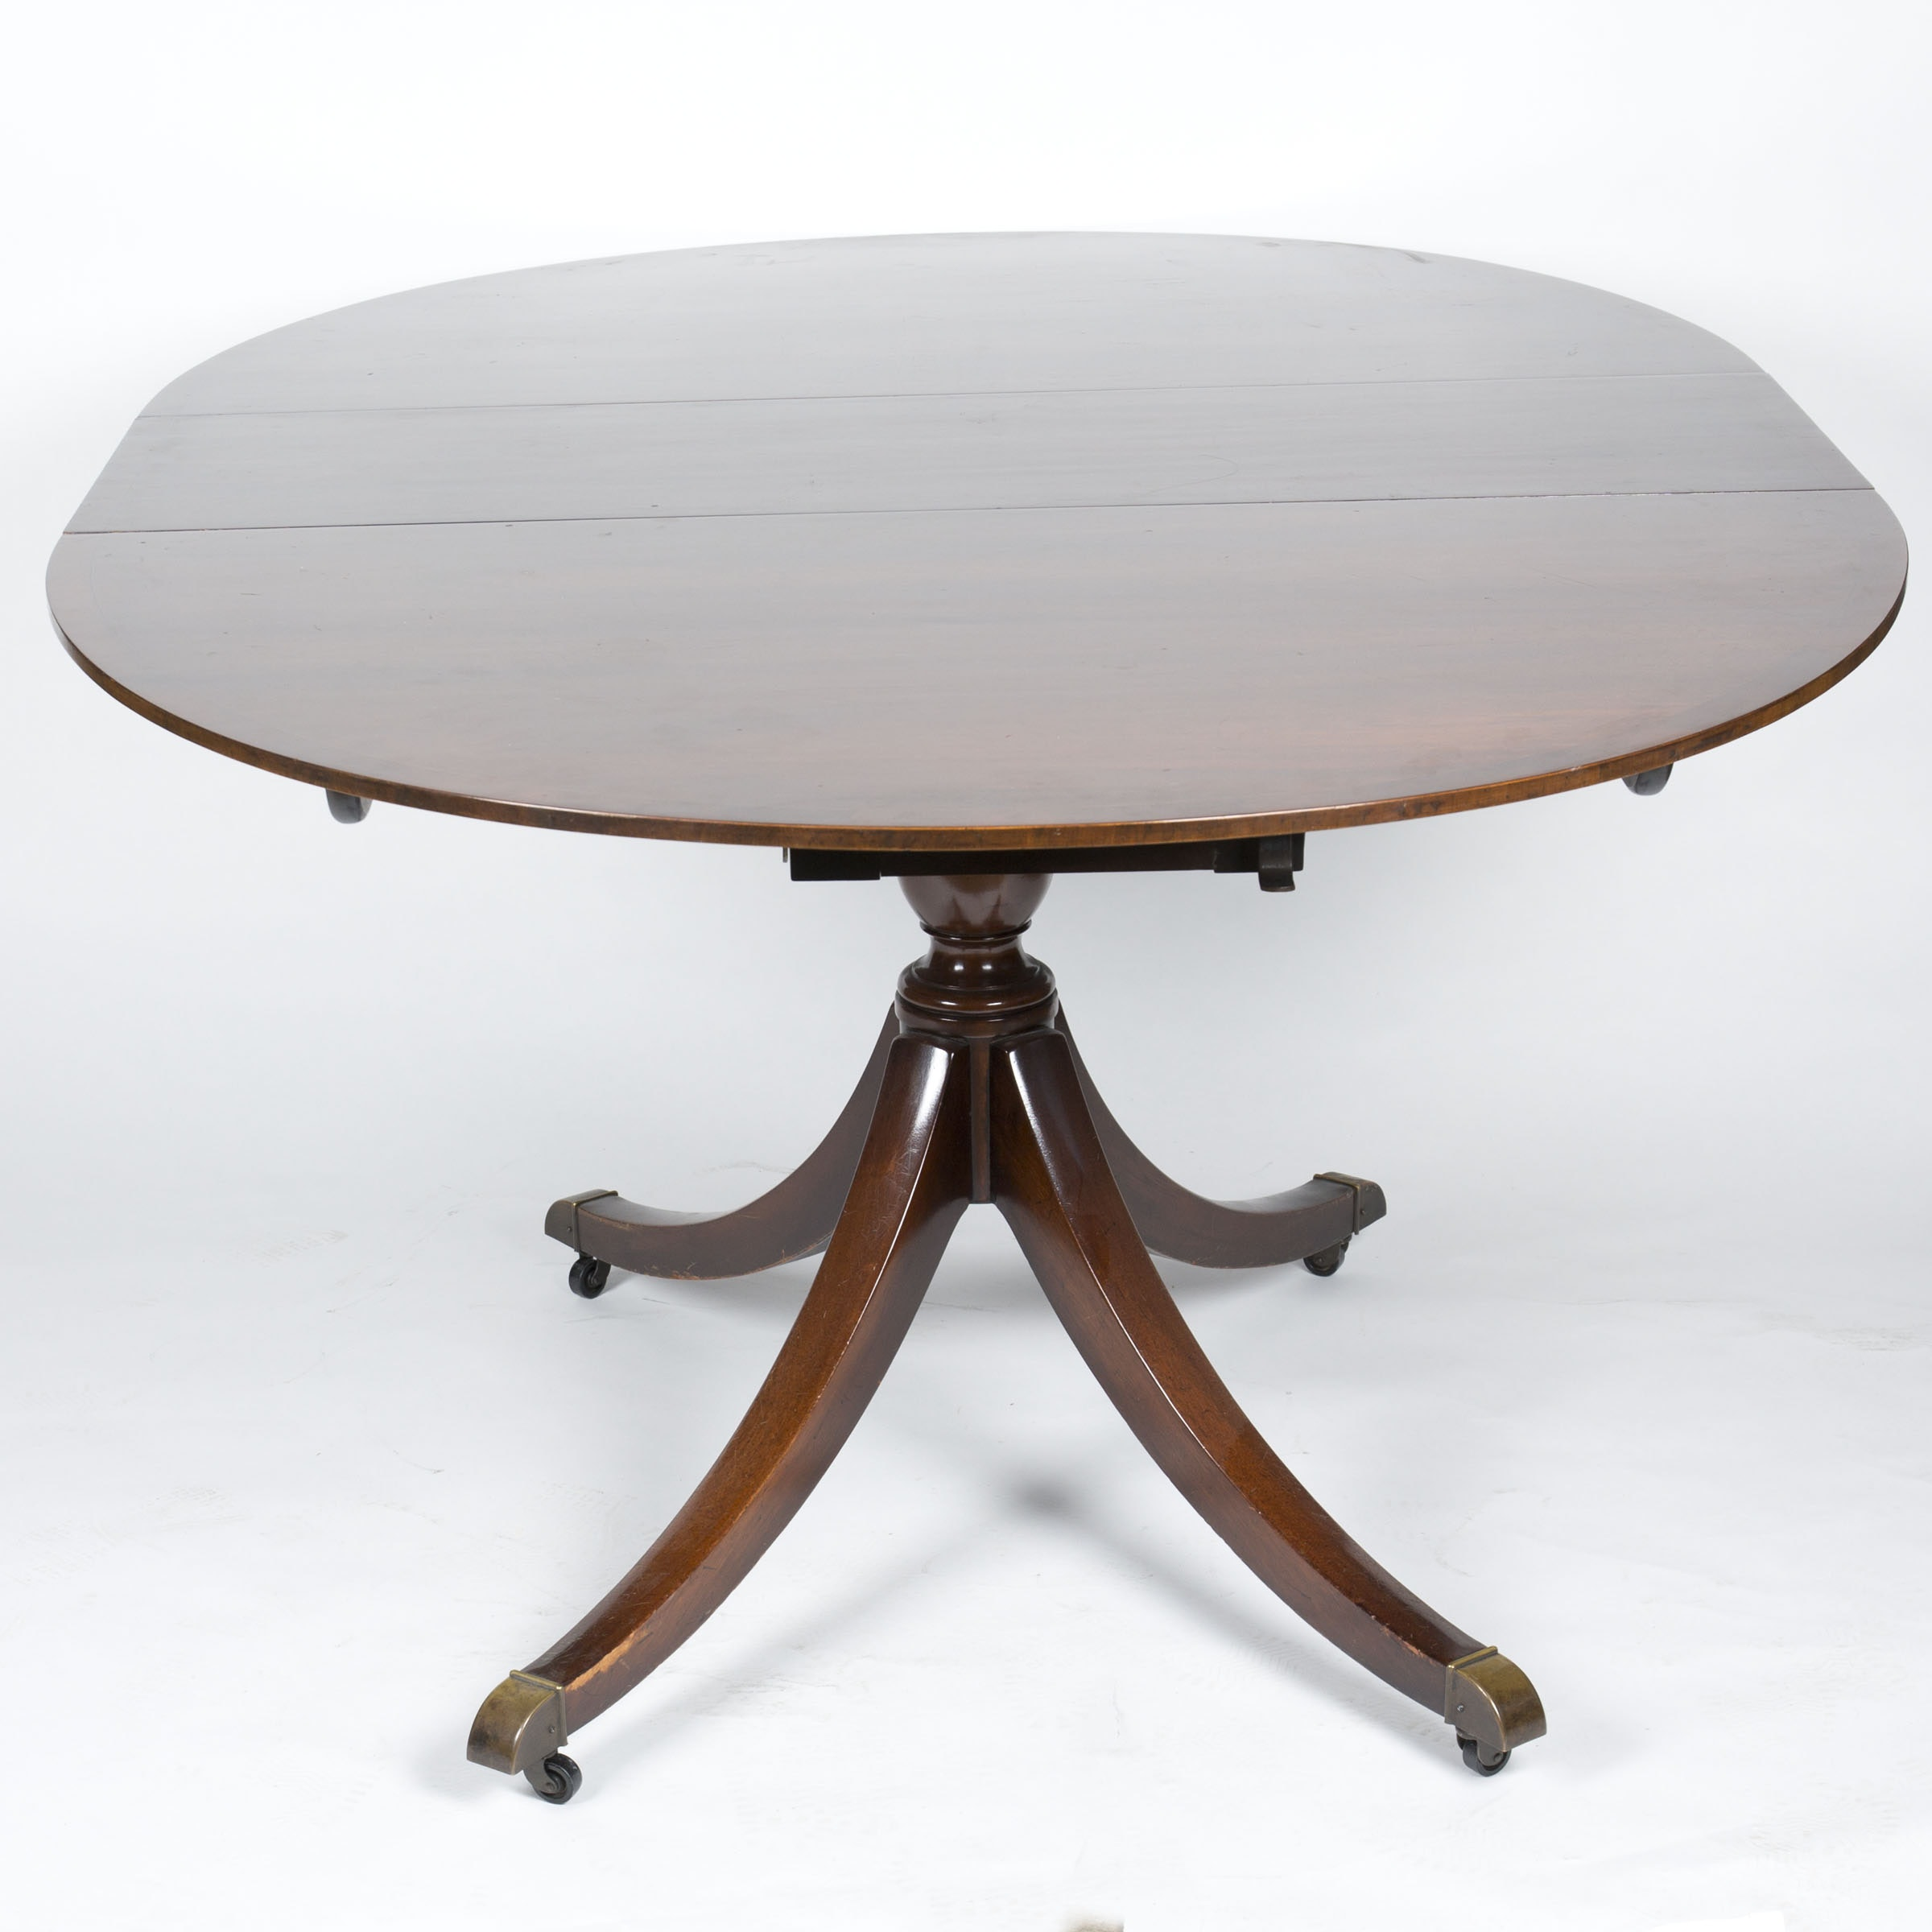 Oval Dining Table with Extension Leaves